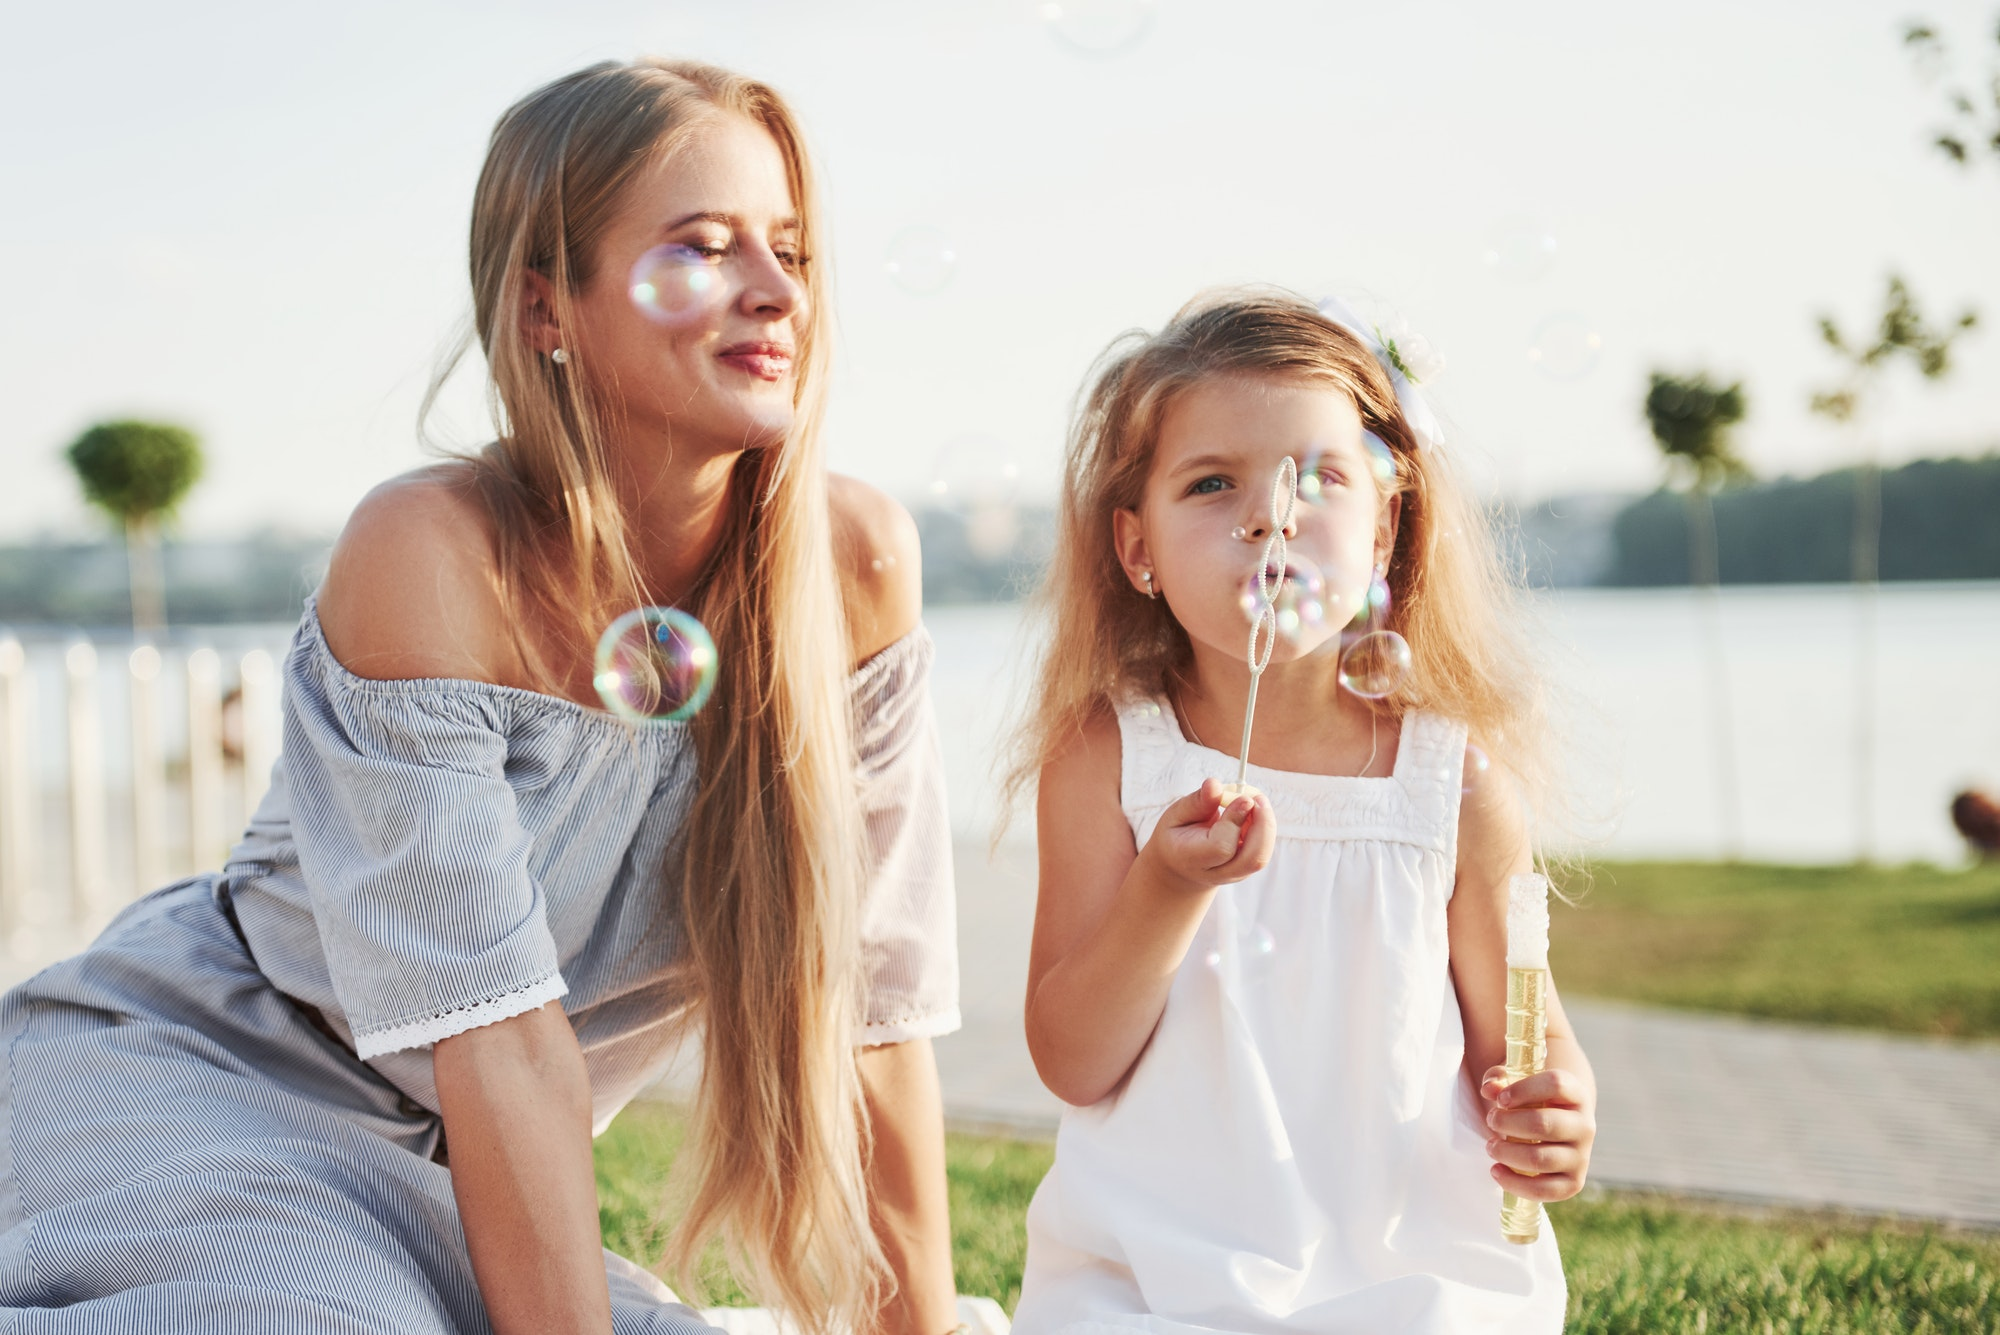 A wonderful girl child makes bubbles with her mom in the park